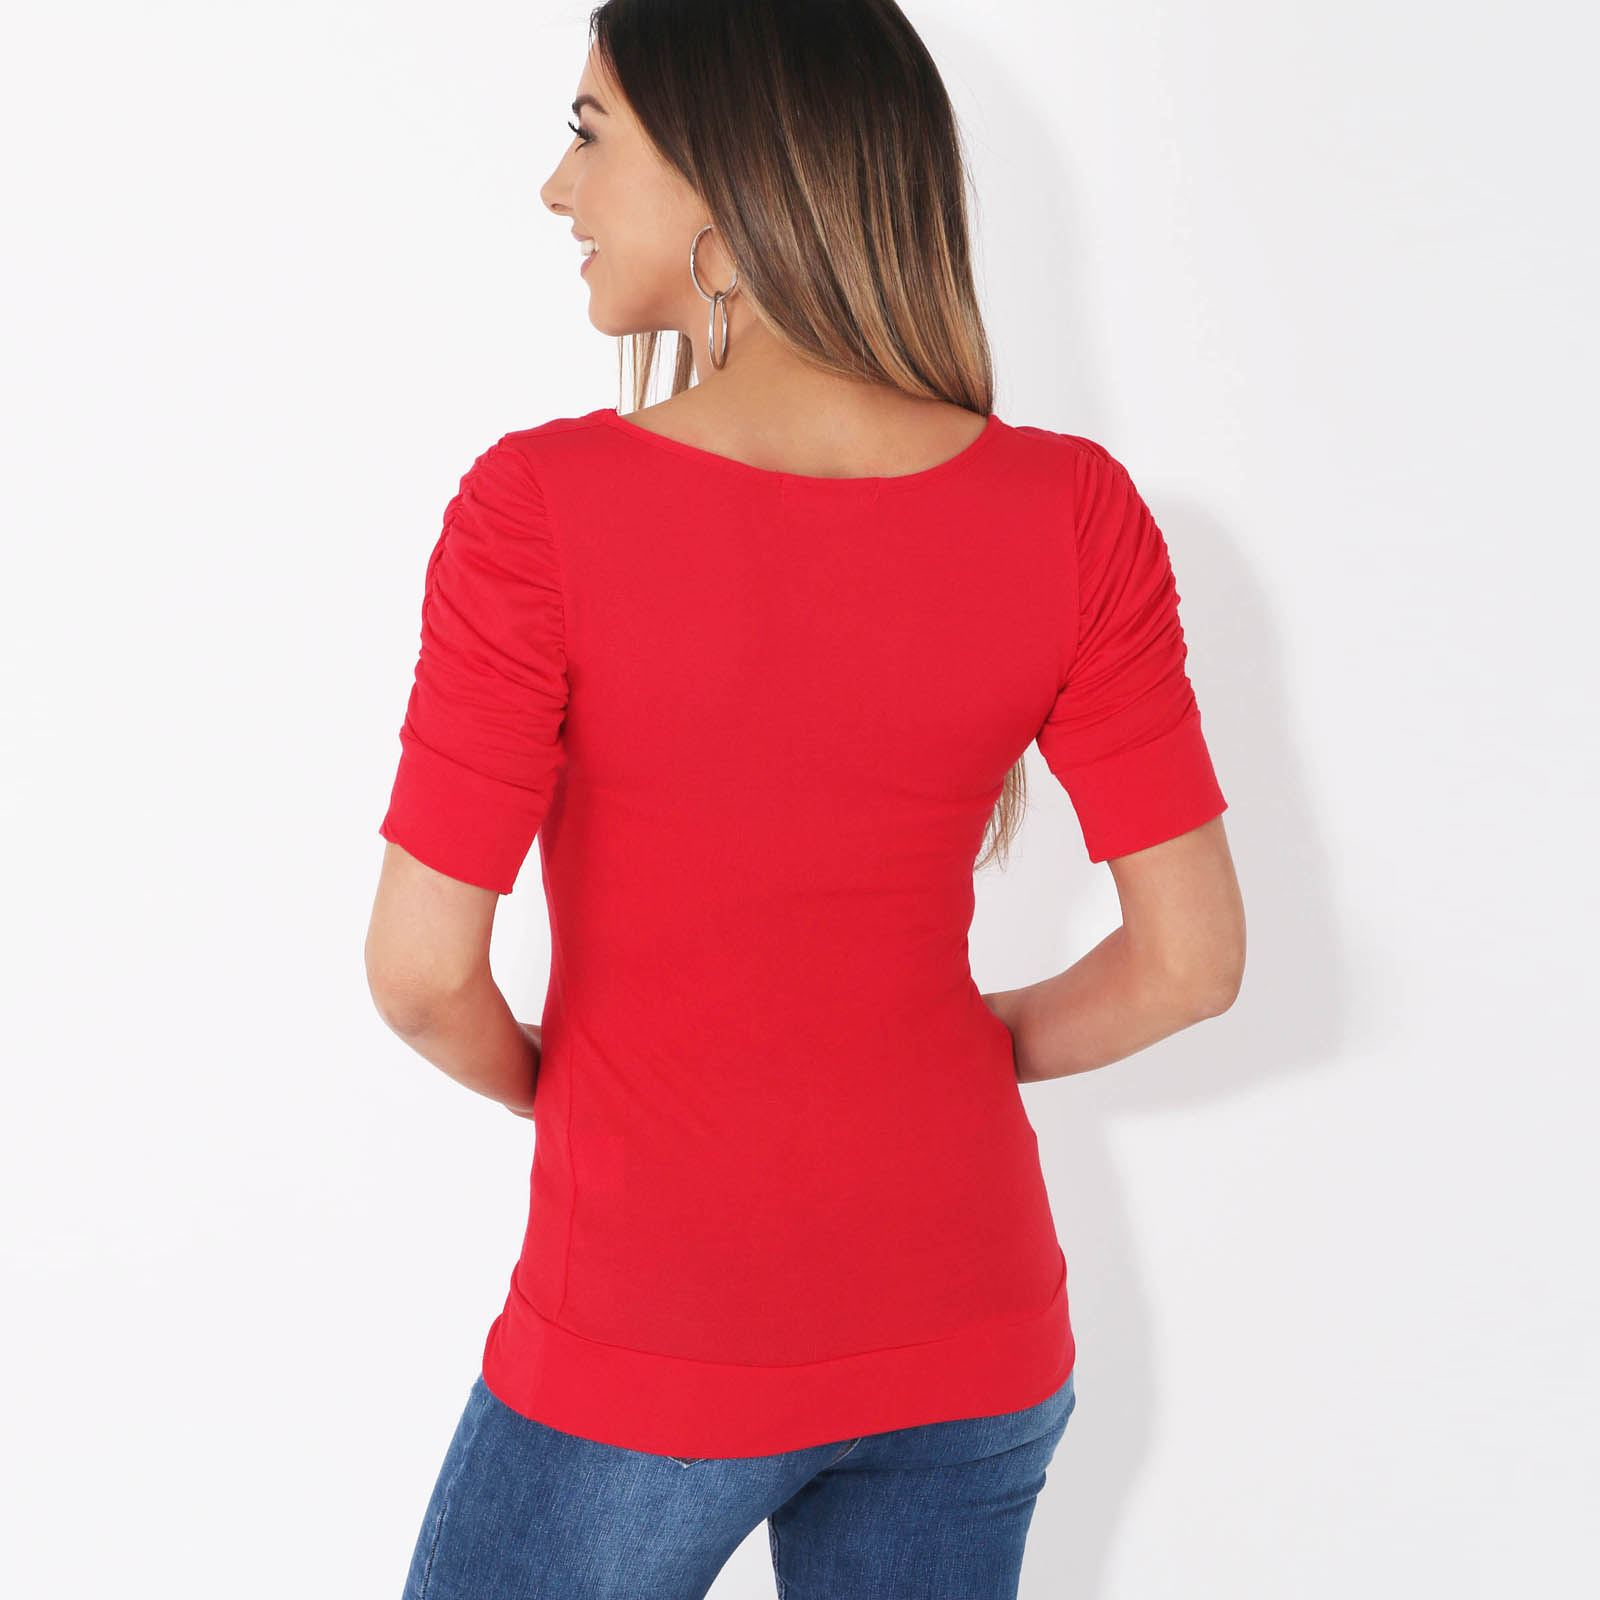 Womens-Ladies-Long-Blouse-Ruched-Pleated-Sleeve-Stretch-Jersey-Plunge-Top-Tshirt thumbnail 26